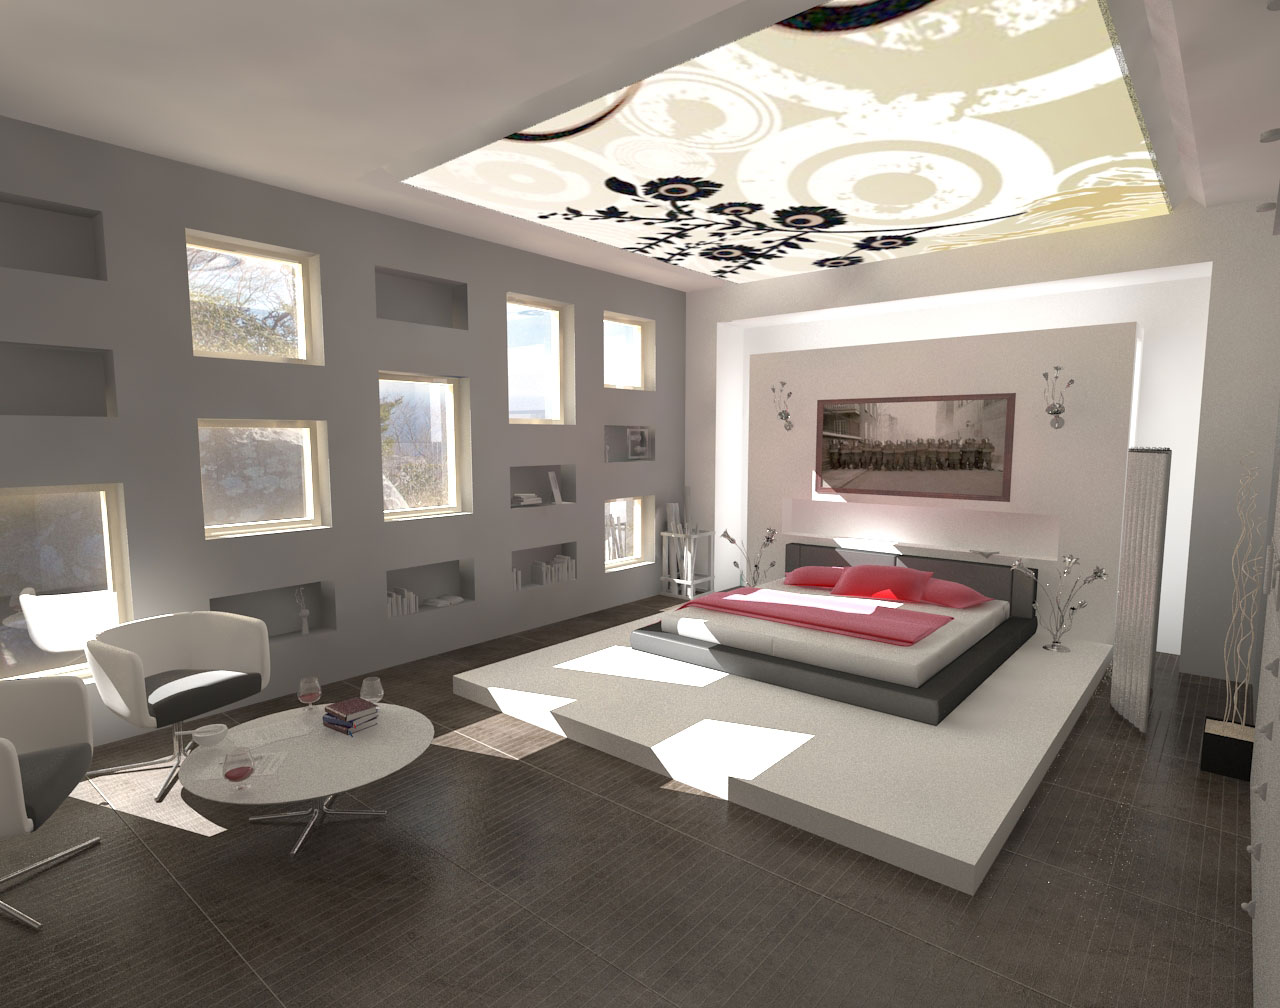 exclusive interior bedroom ideas home design ideas and alternative. Black Bedroom Furniture Sets. Home Design Ideas